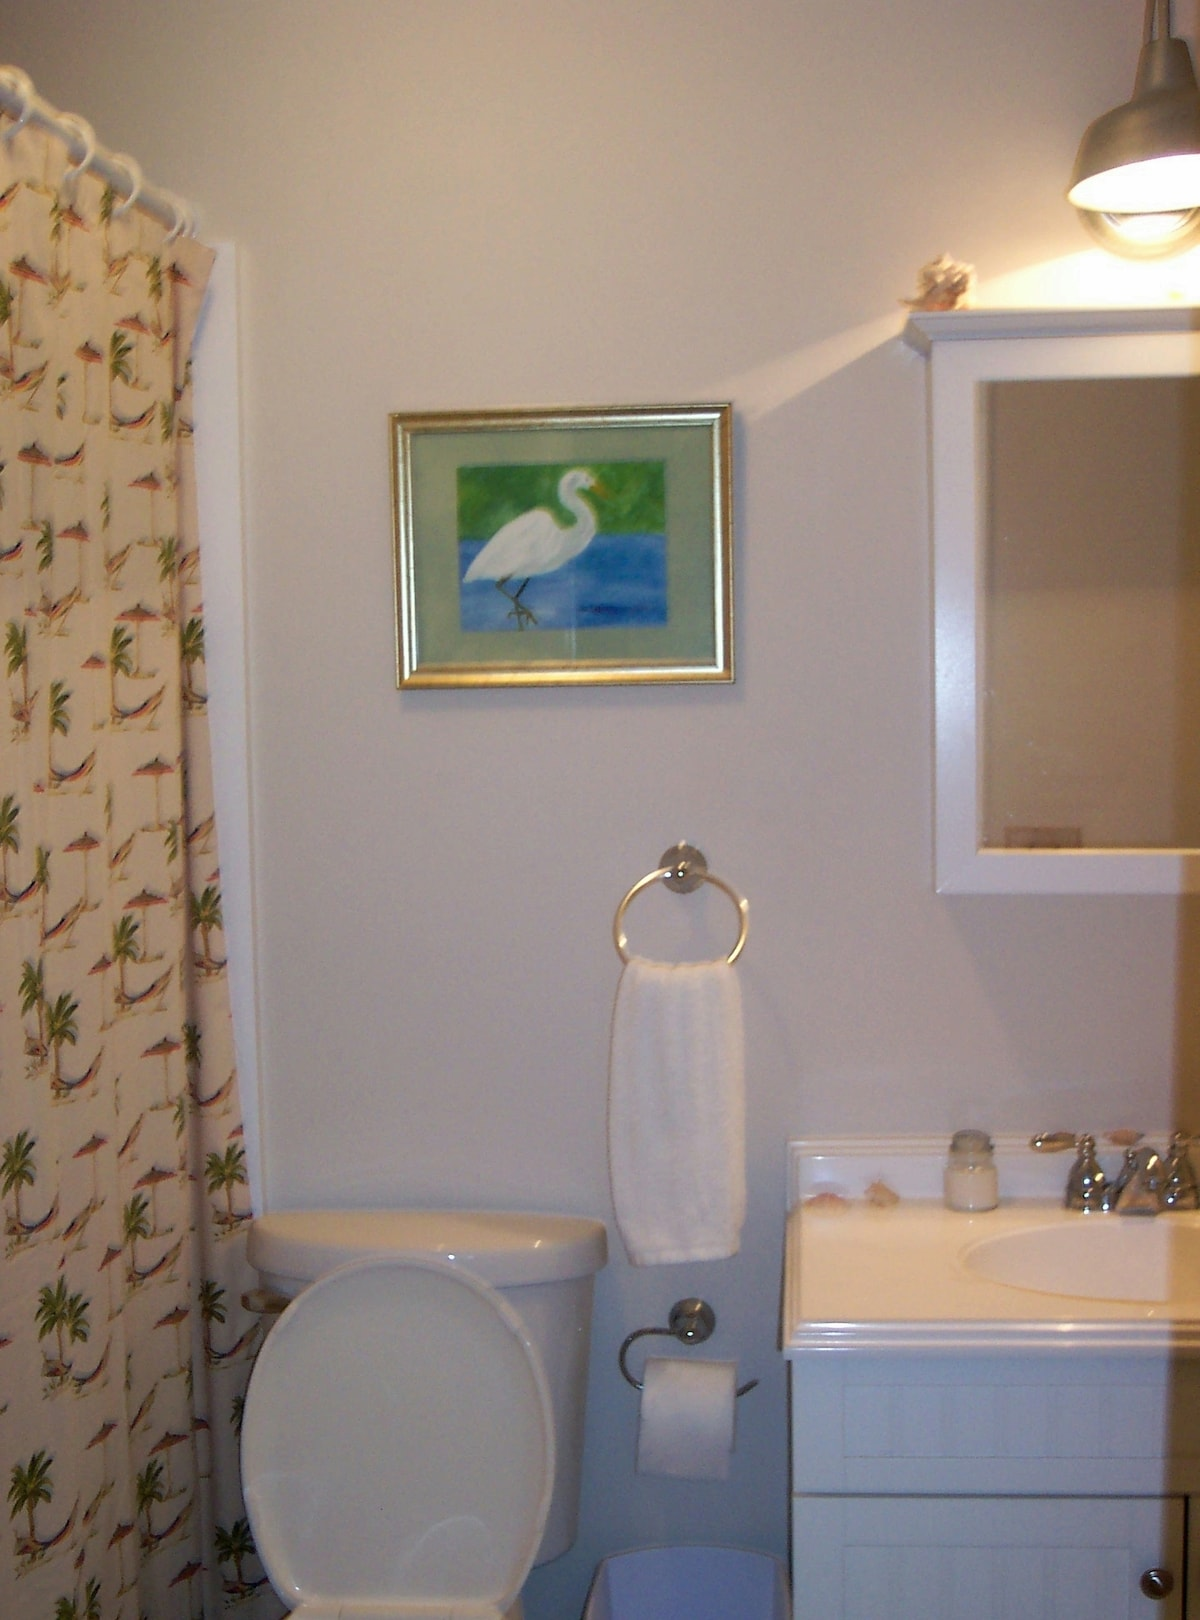 Full bath has deep garden tub and rain shower head, plenty of towels, + extra toiletries for guest's use. Washer dryer in hall closet